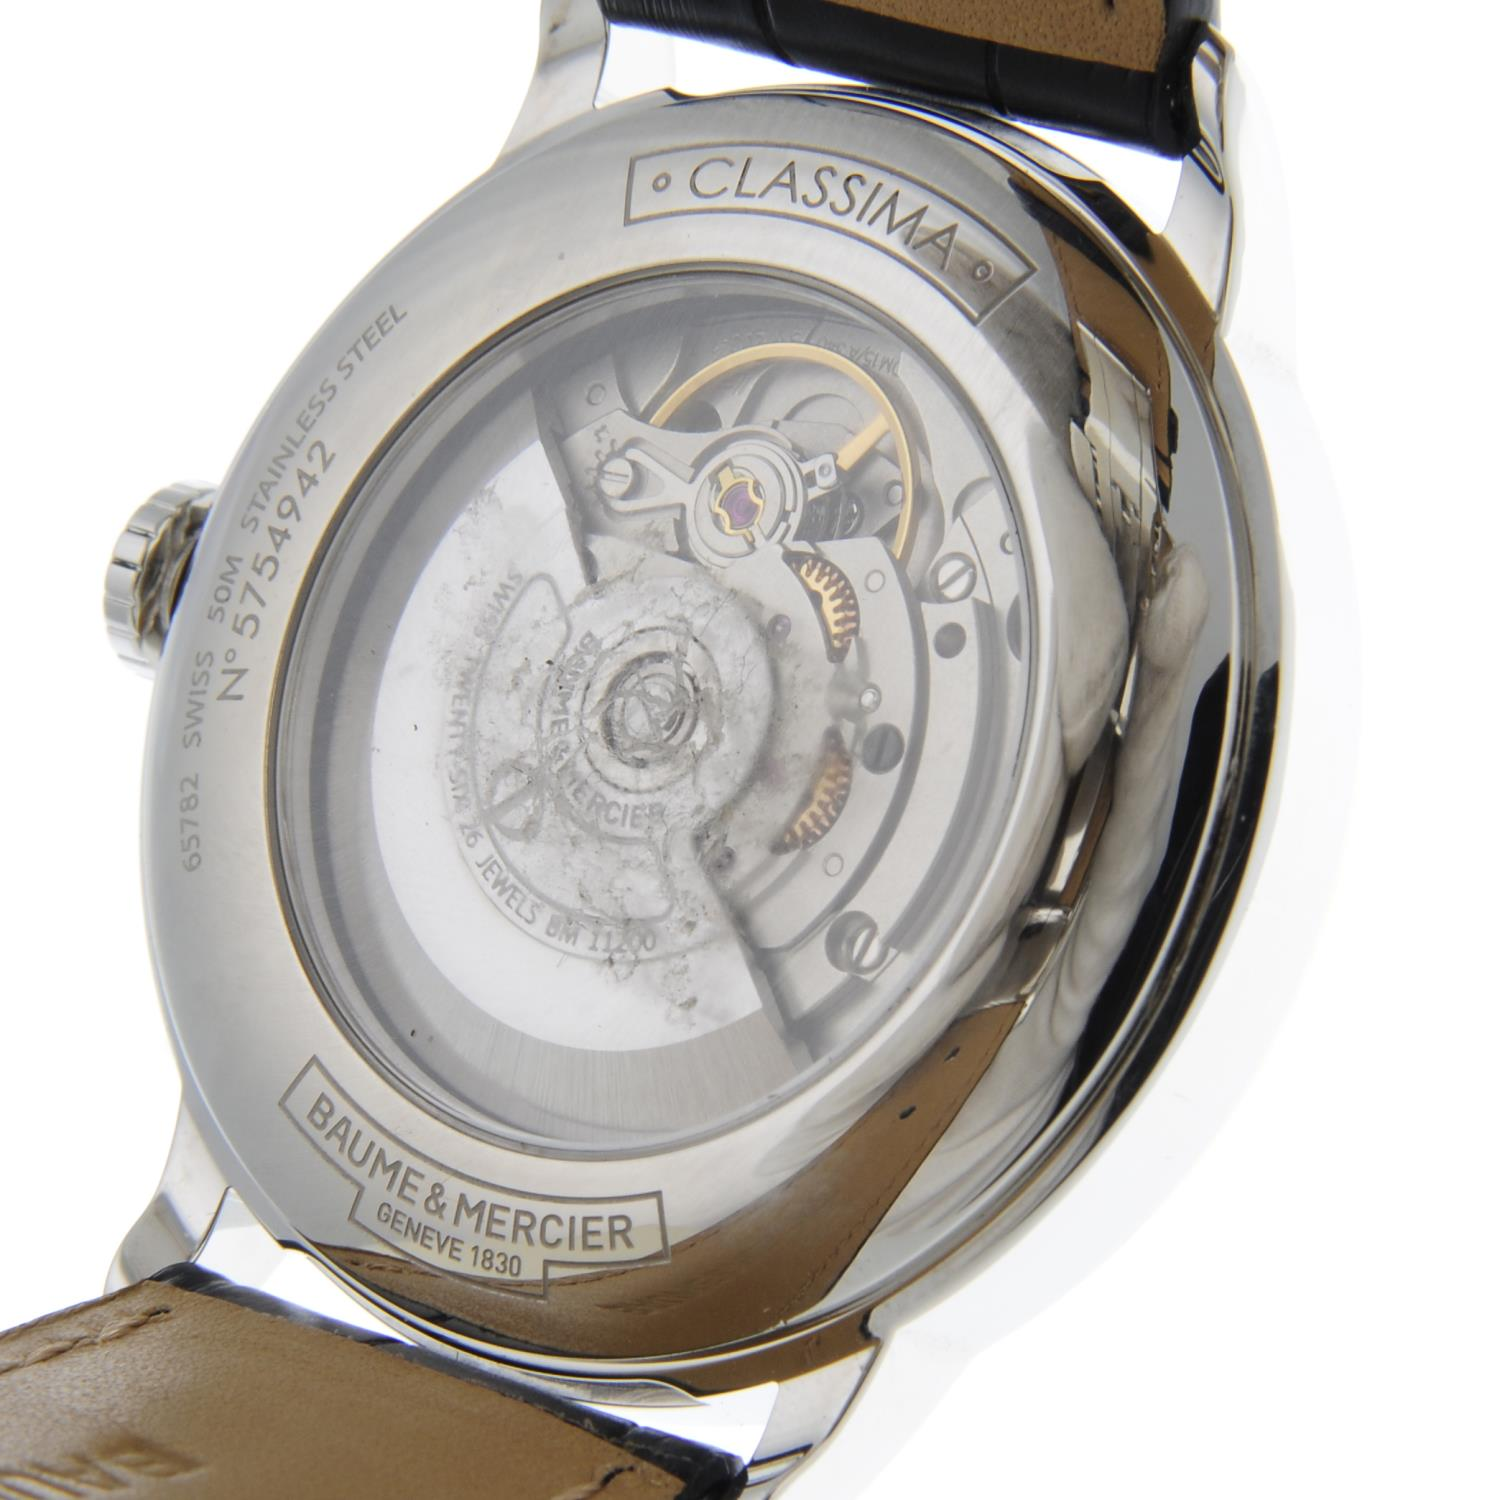 BAUME & MERCIER - a stainless steel Classima wrist watch. - Image 6 of 6